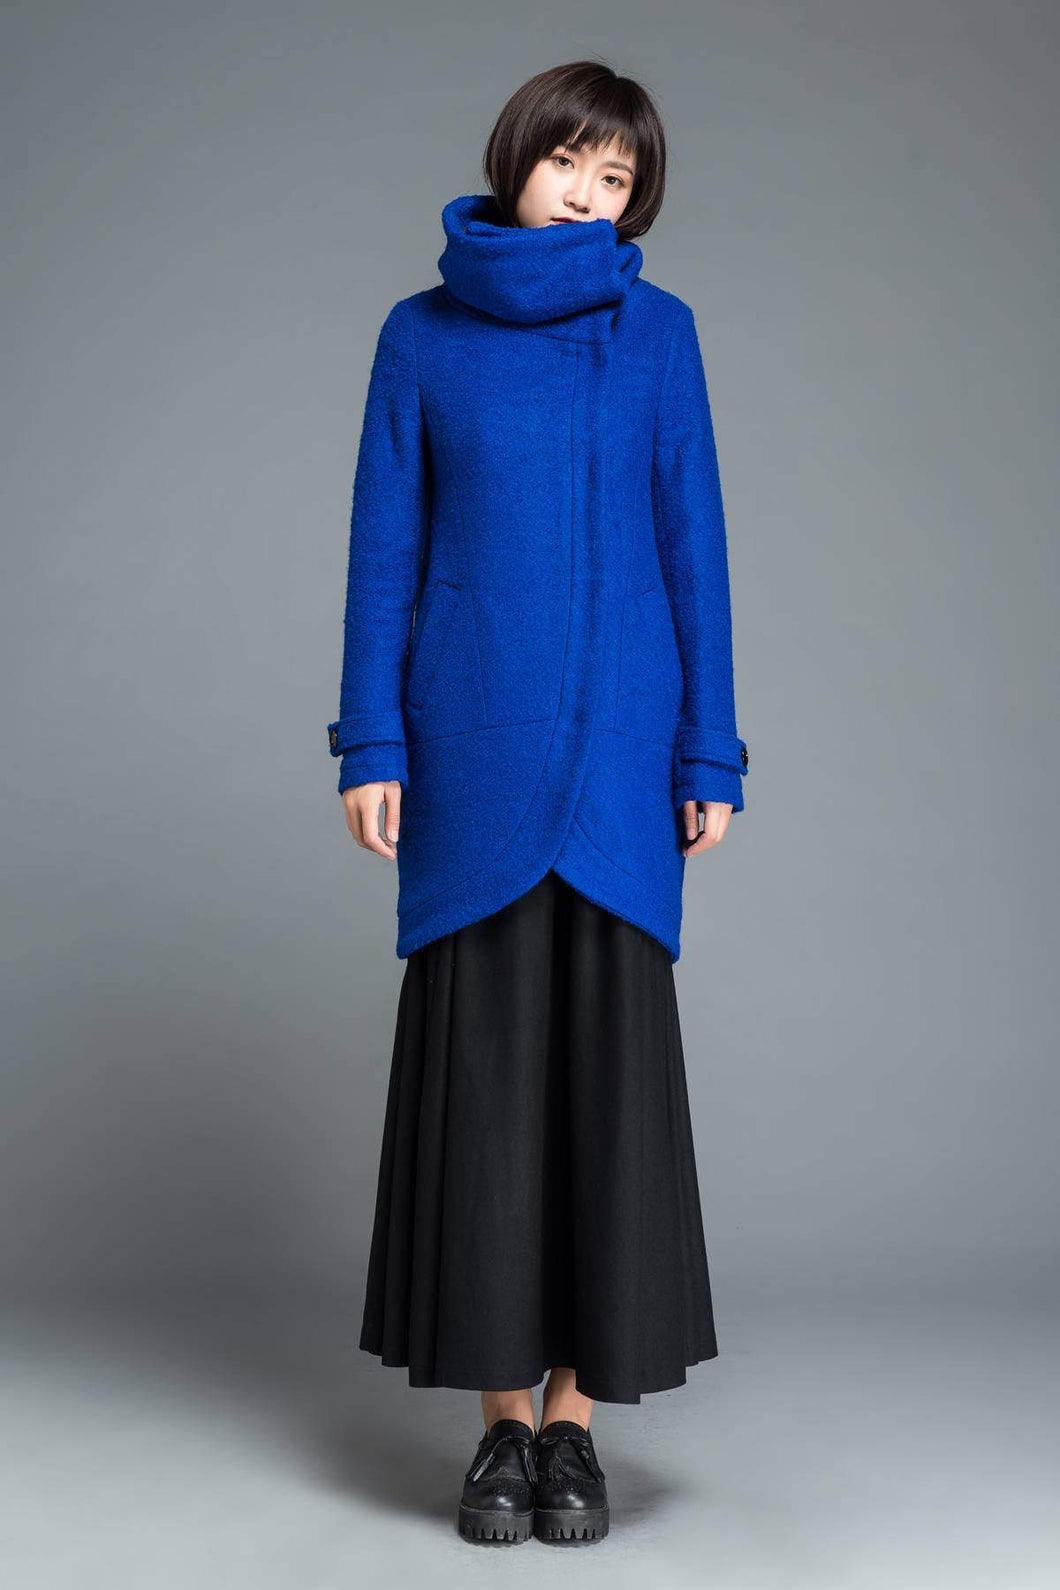 Blue Wool coat, winter wool coat, women wool warm coat, asymmetrical wool coat, winter wool coat, blue coat, cowl neck coat  C1211